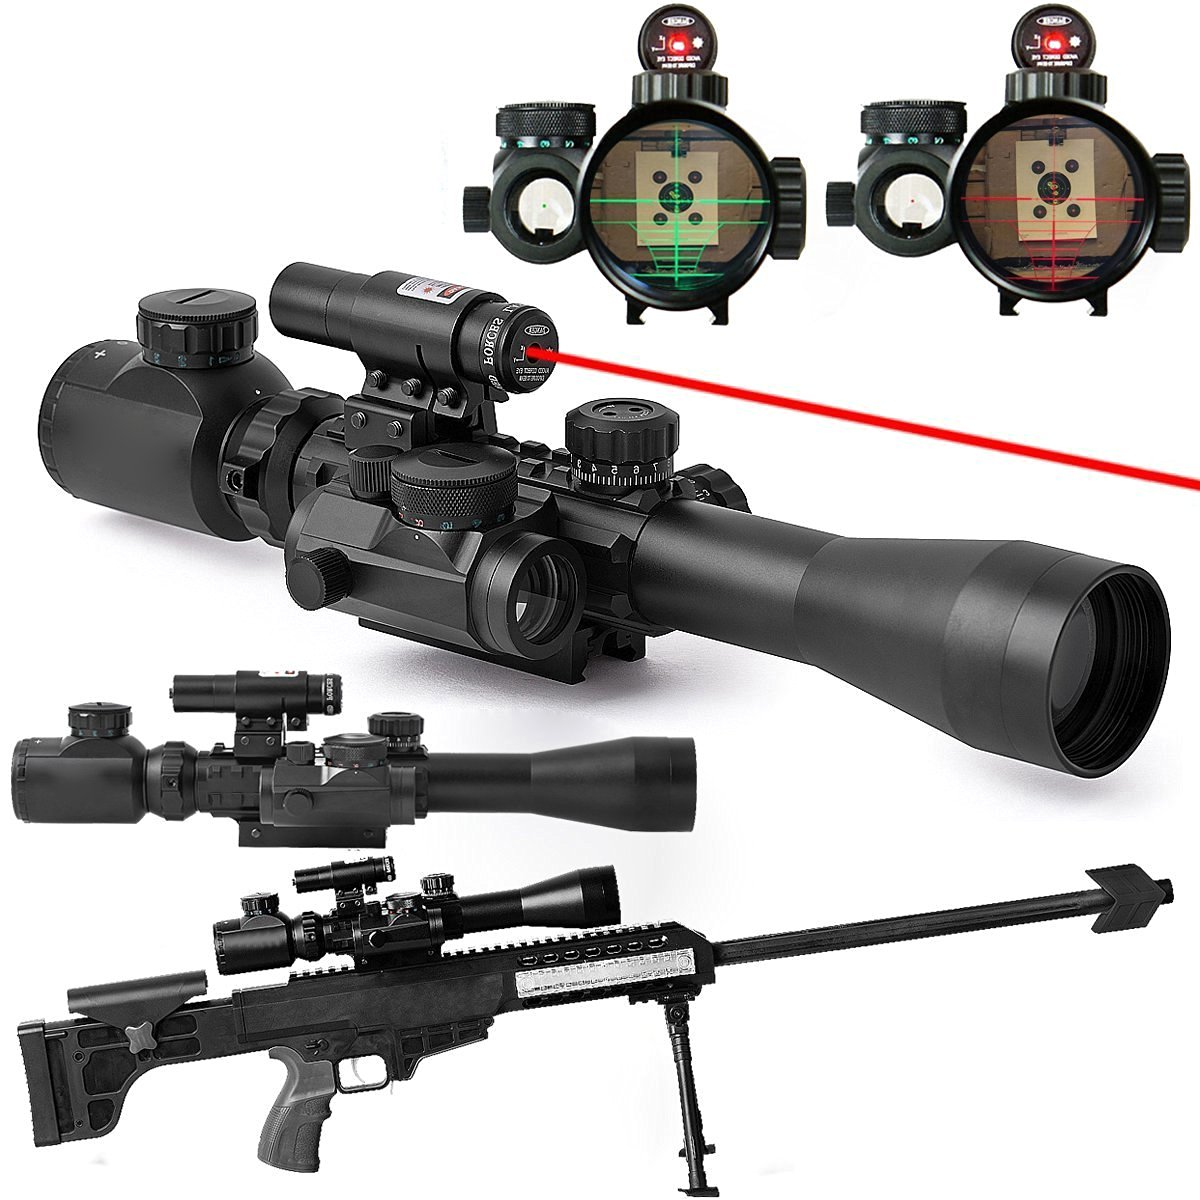 Freehawk® Tactical 3-9x40mm Illuminated Rifle Scope/Gun Scope/Gun Sights with Red Laser & Red Dot Sight of Red / Green Reticle Mount